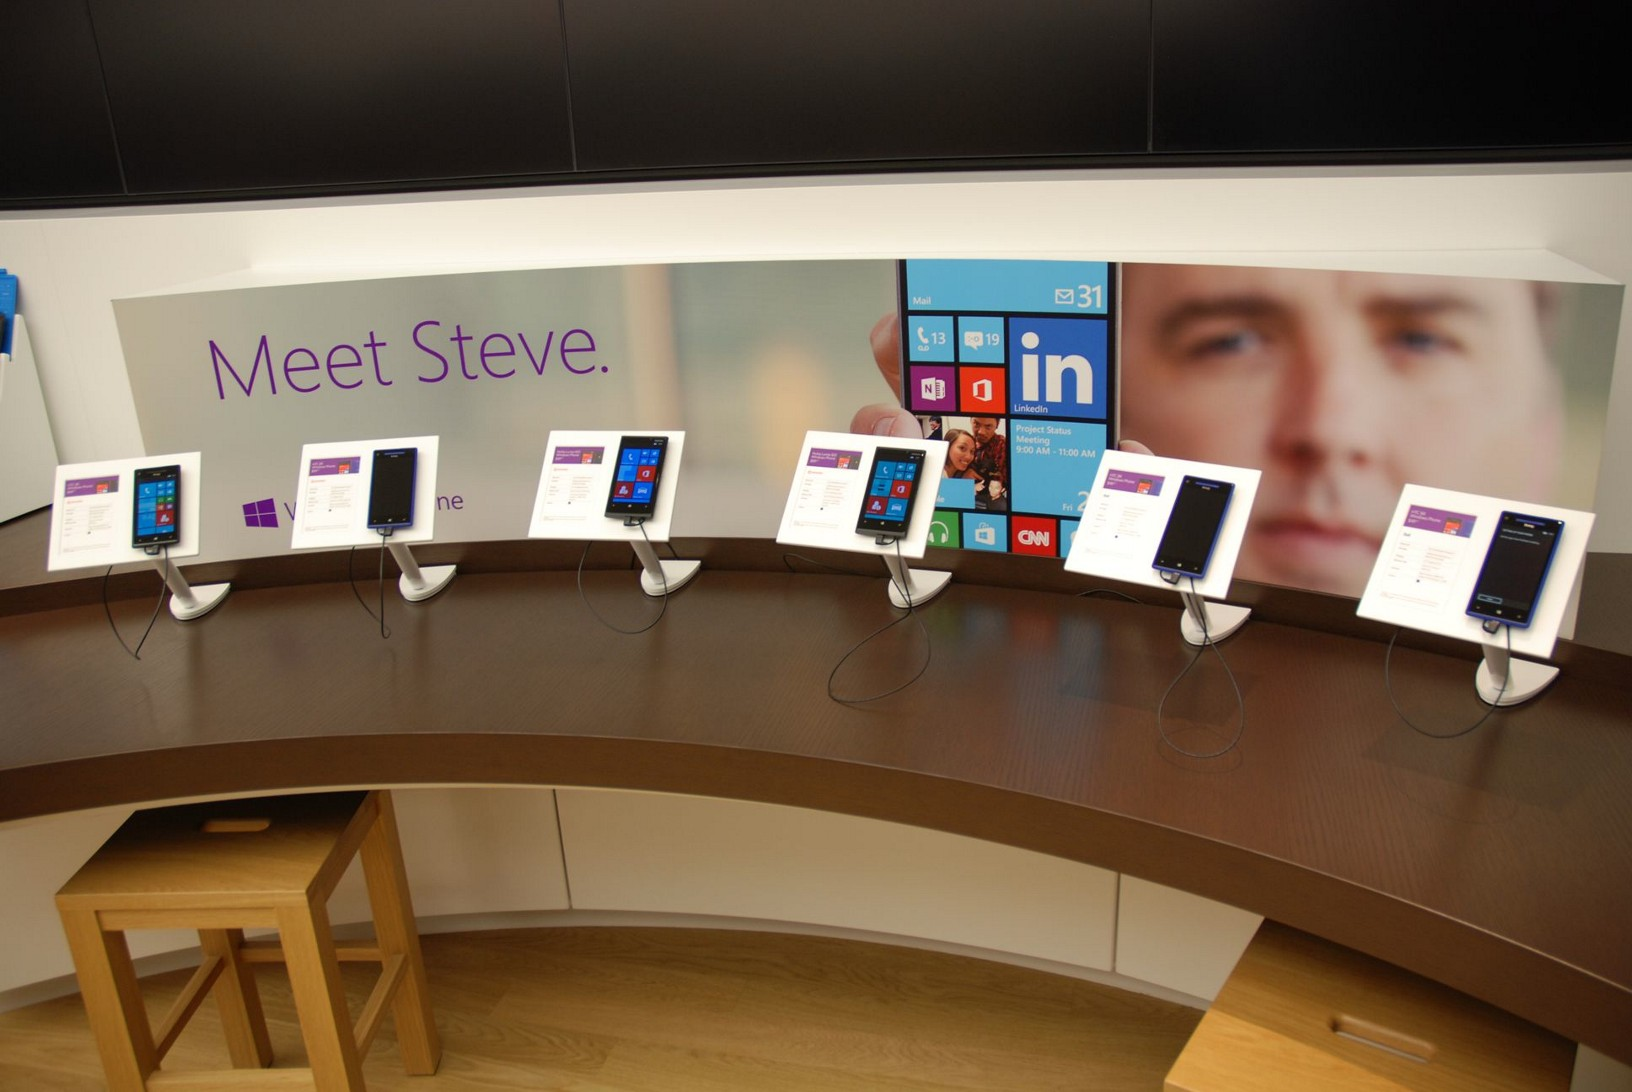 Microsoft Store Windows Phone Display